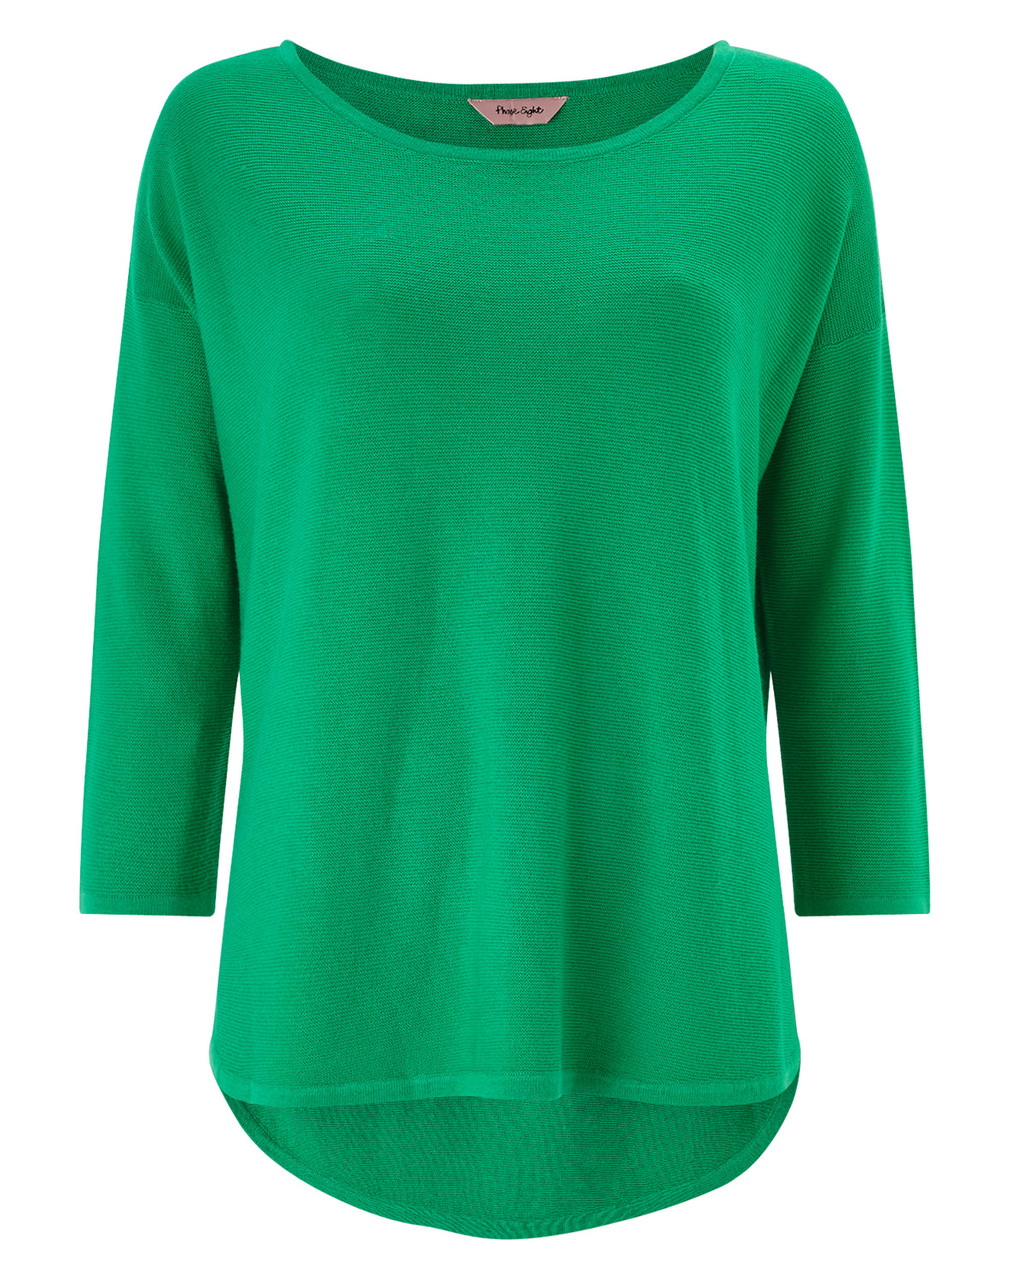 Megg Curve Hem Jumper - neckline: round neck; pattern: plain; length: below the bottom; style: standard; predominant colour: emerald green; occasions: casual; fit: slim fit; sleeve length: 3/4 length; sleeve style: standard; texture group: knits/crochet; pattern type: fabric; fibres: viscose/rayon - mix; season: a/w 2015; wardrobe: highlight